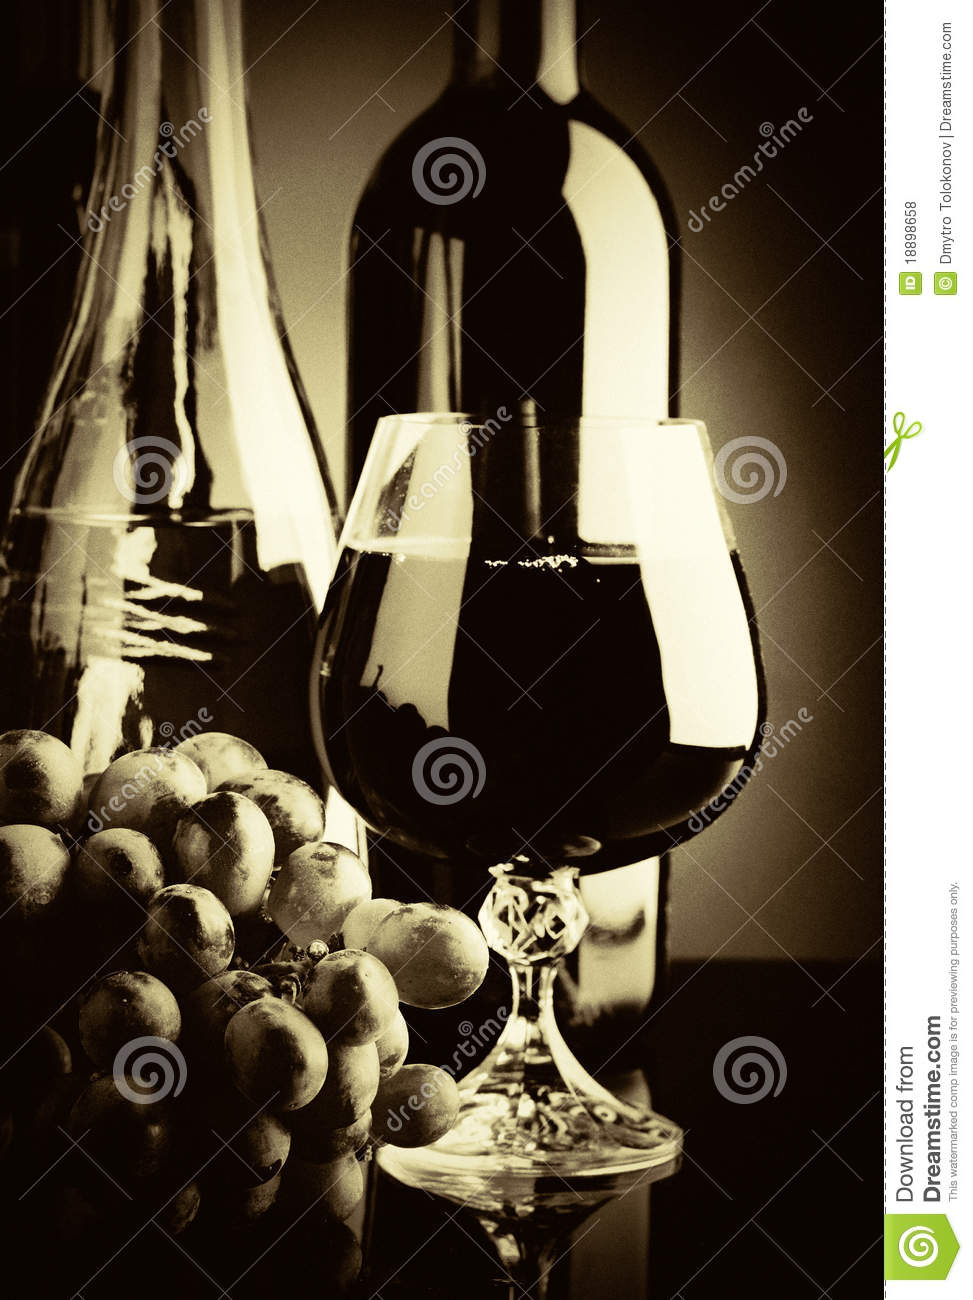 Old wine. Retro still life